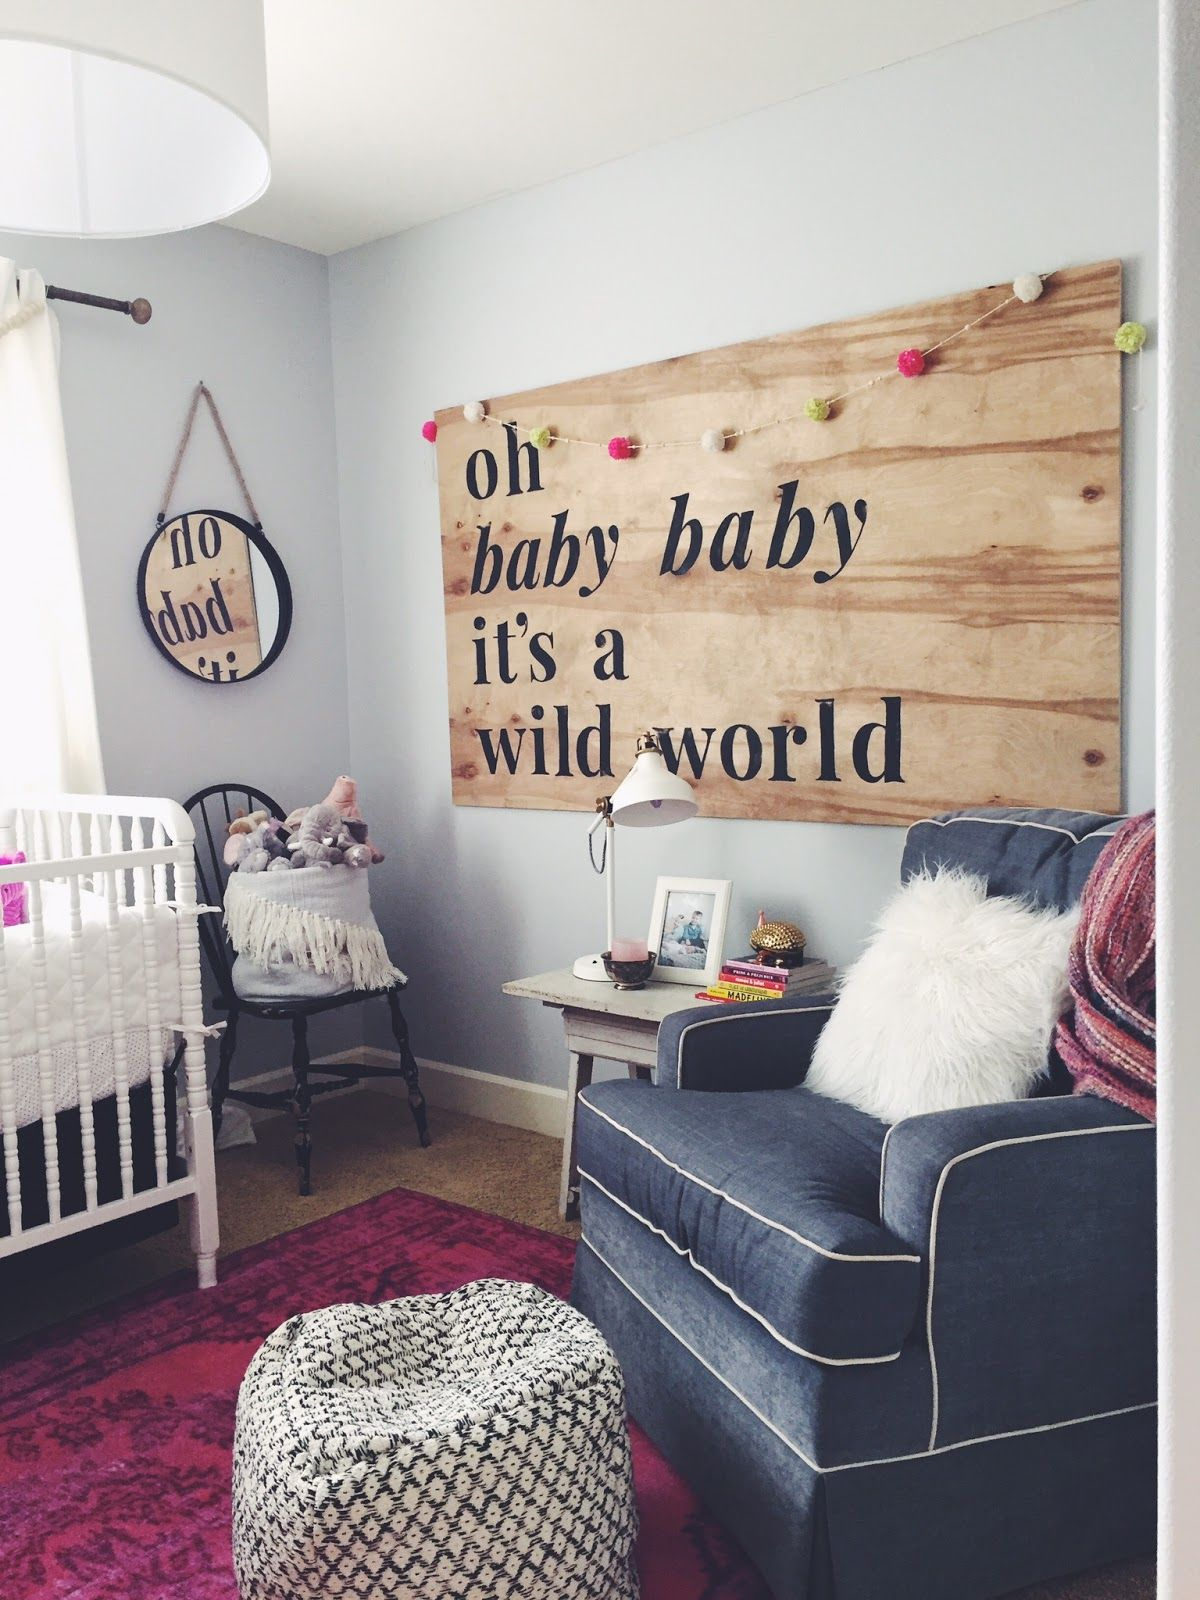 Winnie Wilde's Nursery Bright, Ecclectic, whimsical